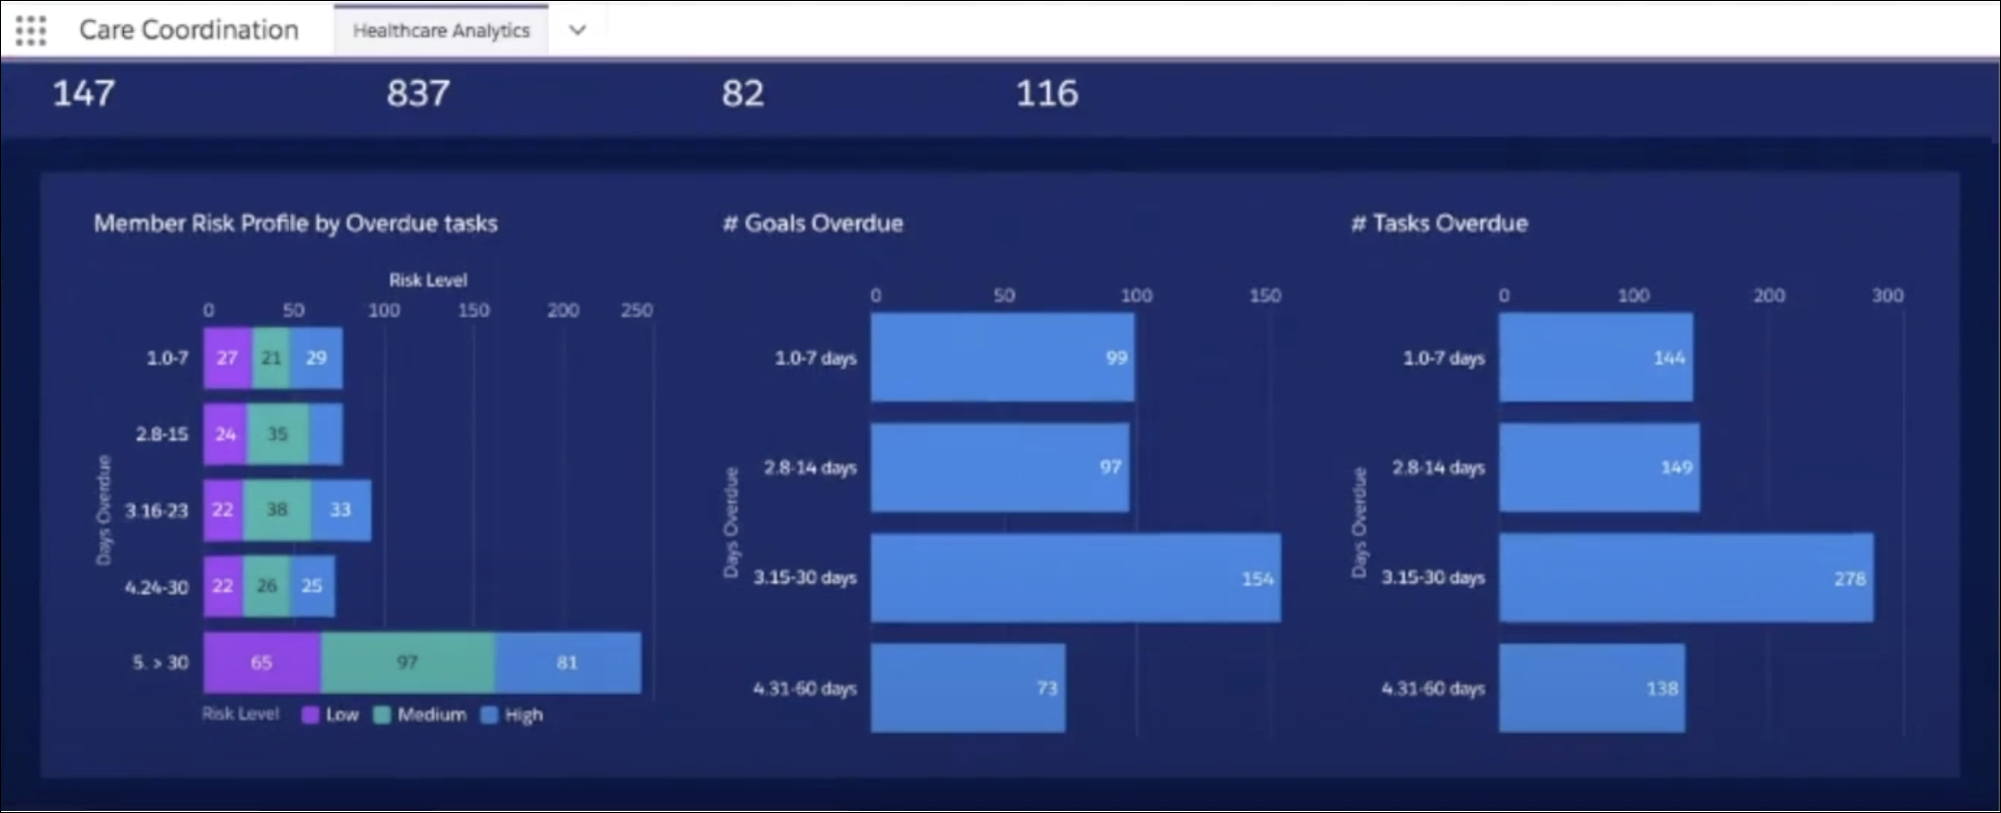 Einstein Analytics showing graphs that represent Member Risk Profile by Overdue tasks, Number of Goals Overdue, and Number of Tasks Overdue.